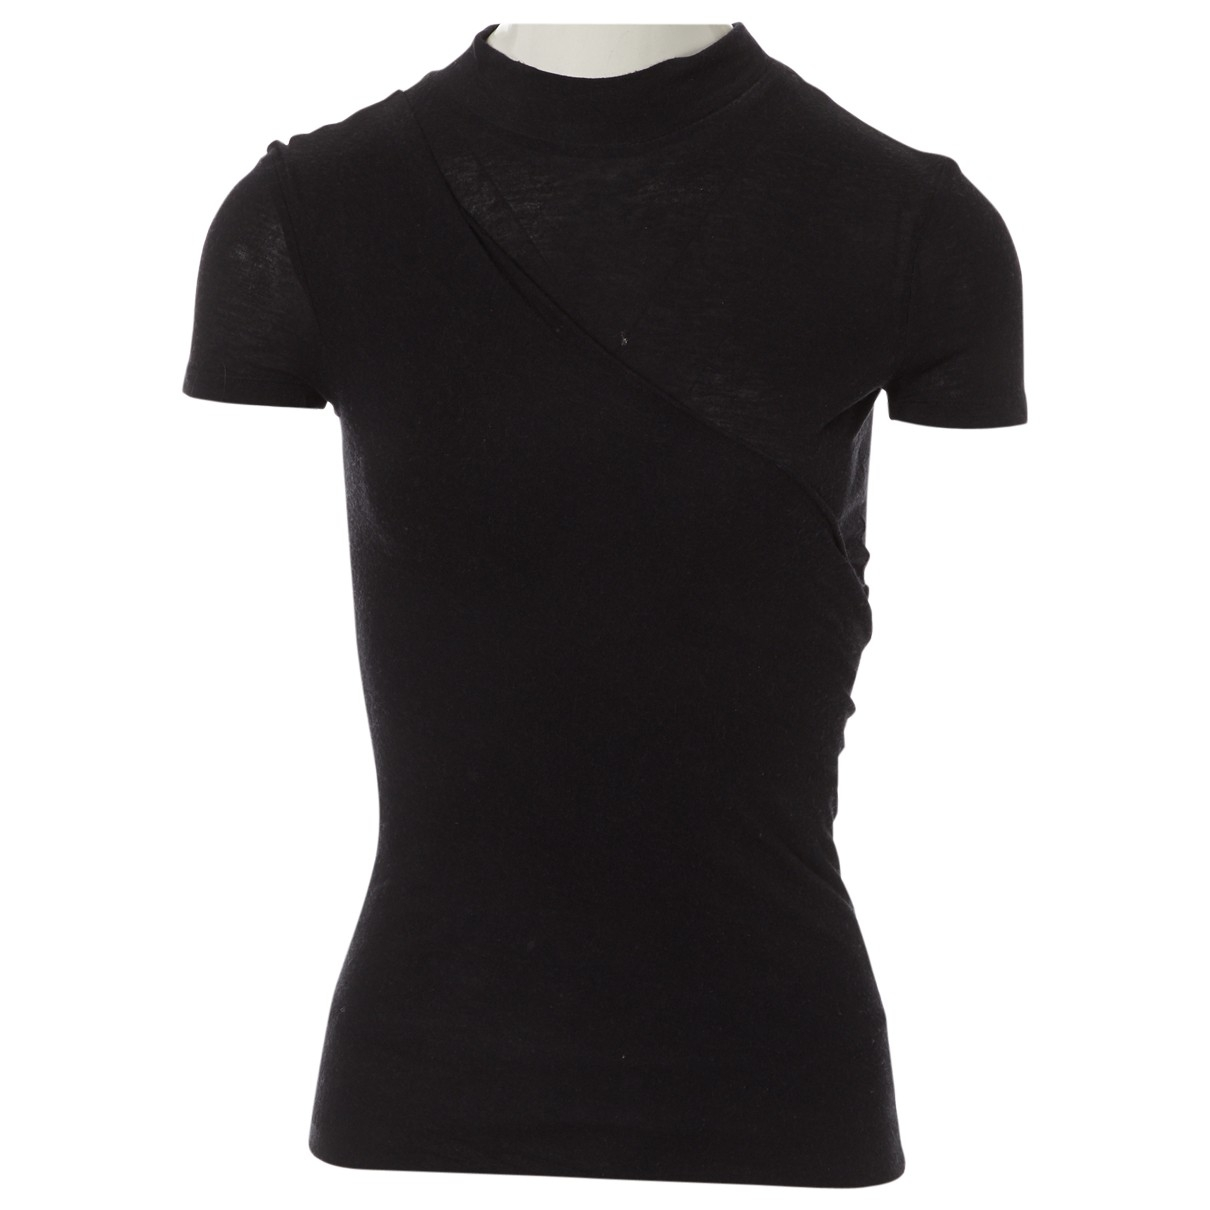 Balmain \N Black  top for Women 34 FR